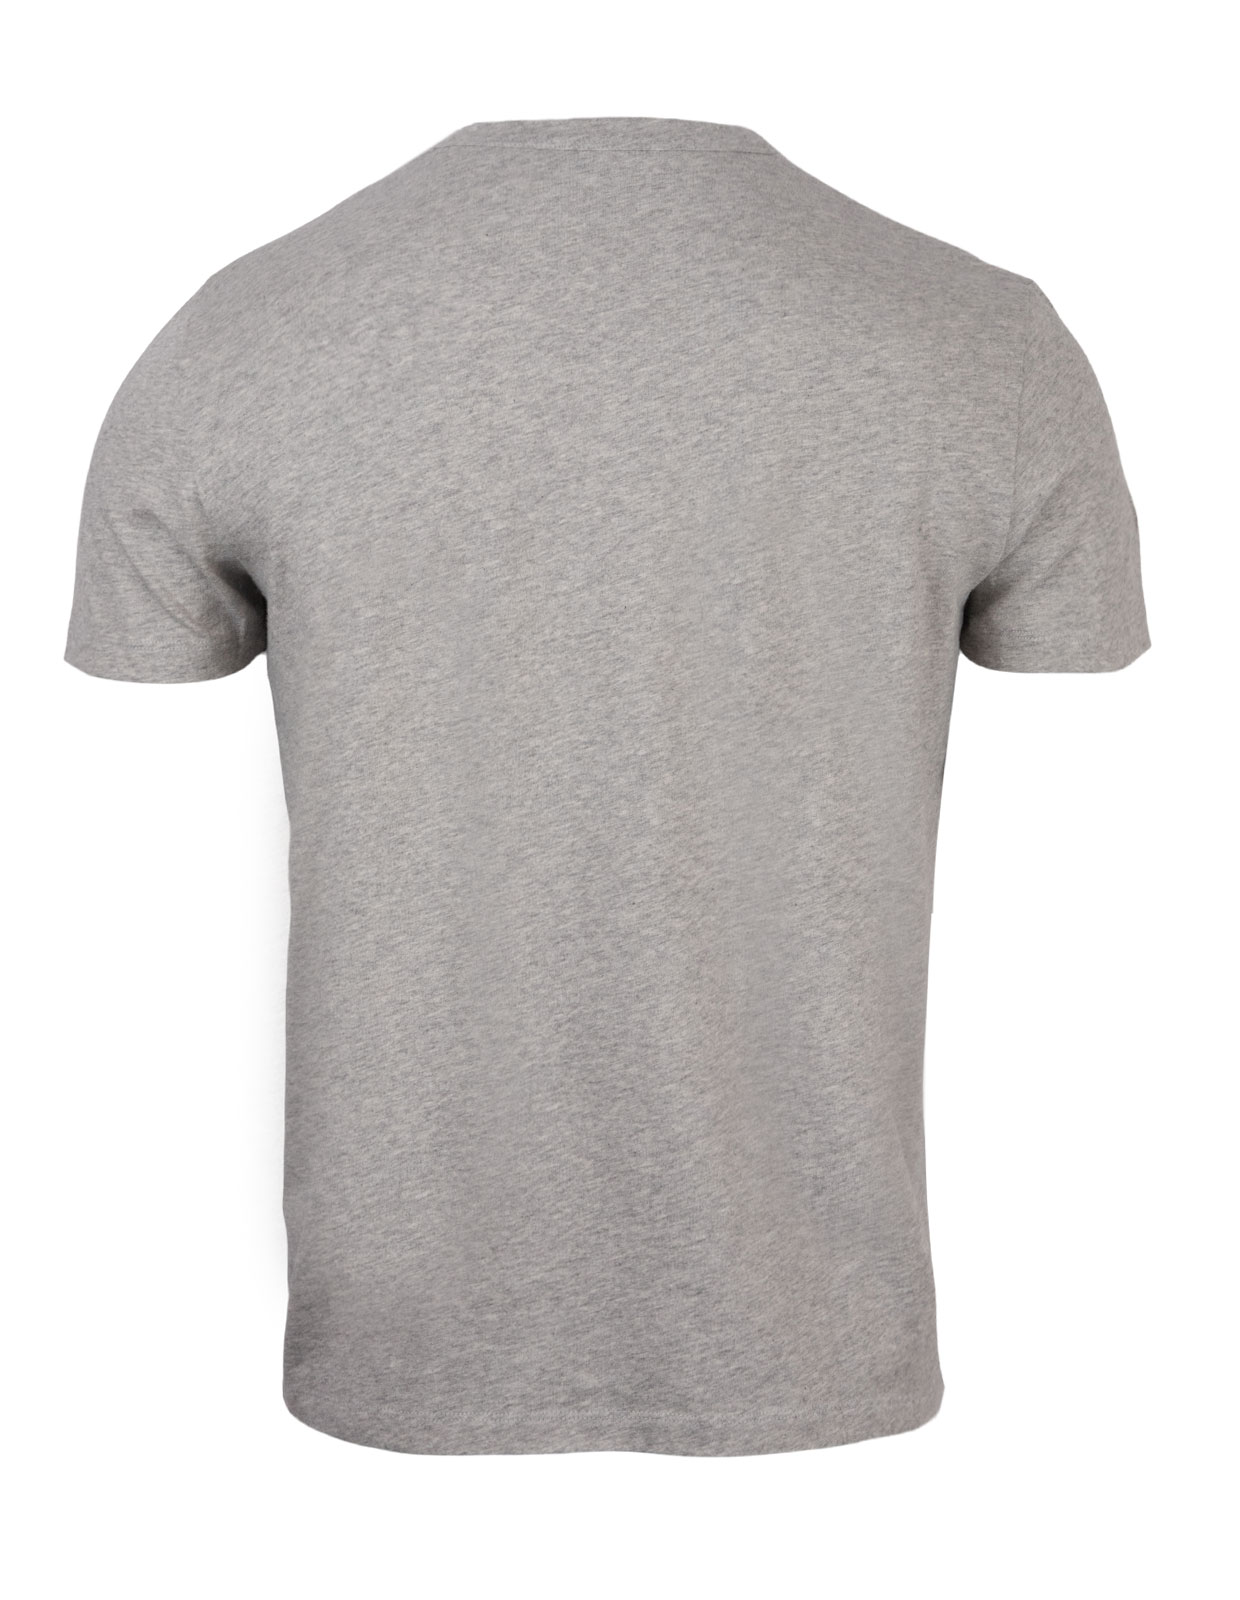 Philippe T-Shirt Silk Touch Gris Chin